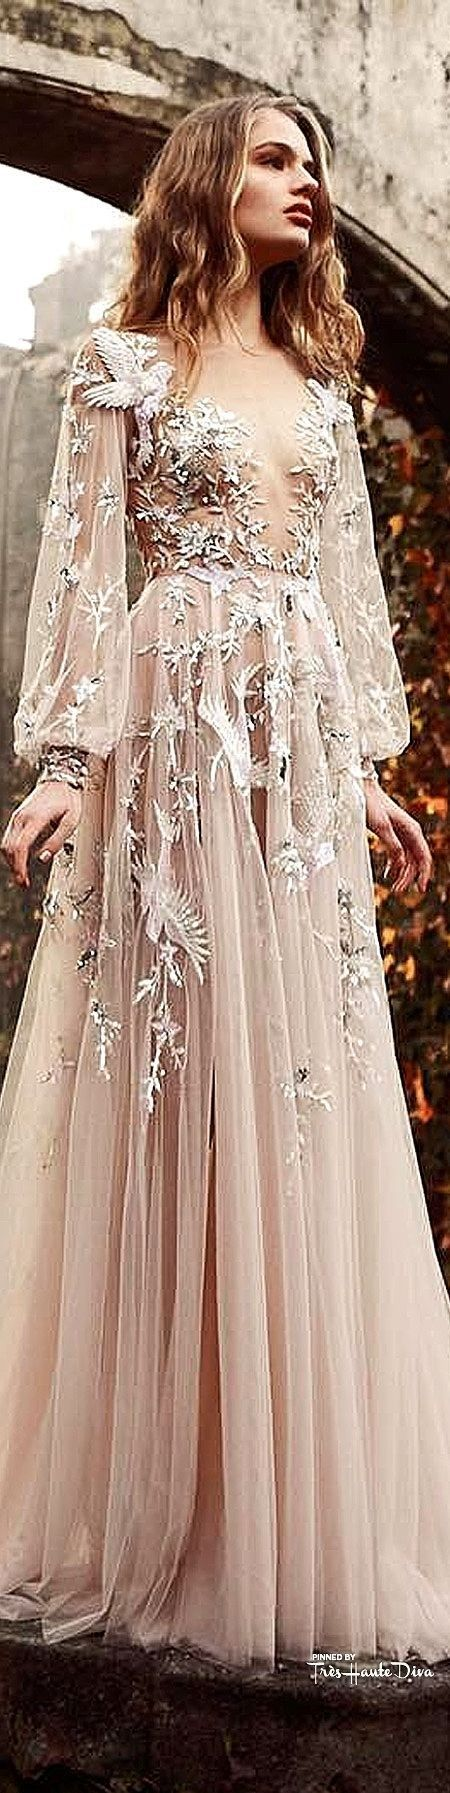 Paolo sebastian couture ss gown paolo haute couture pinterest